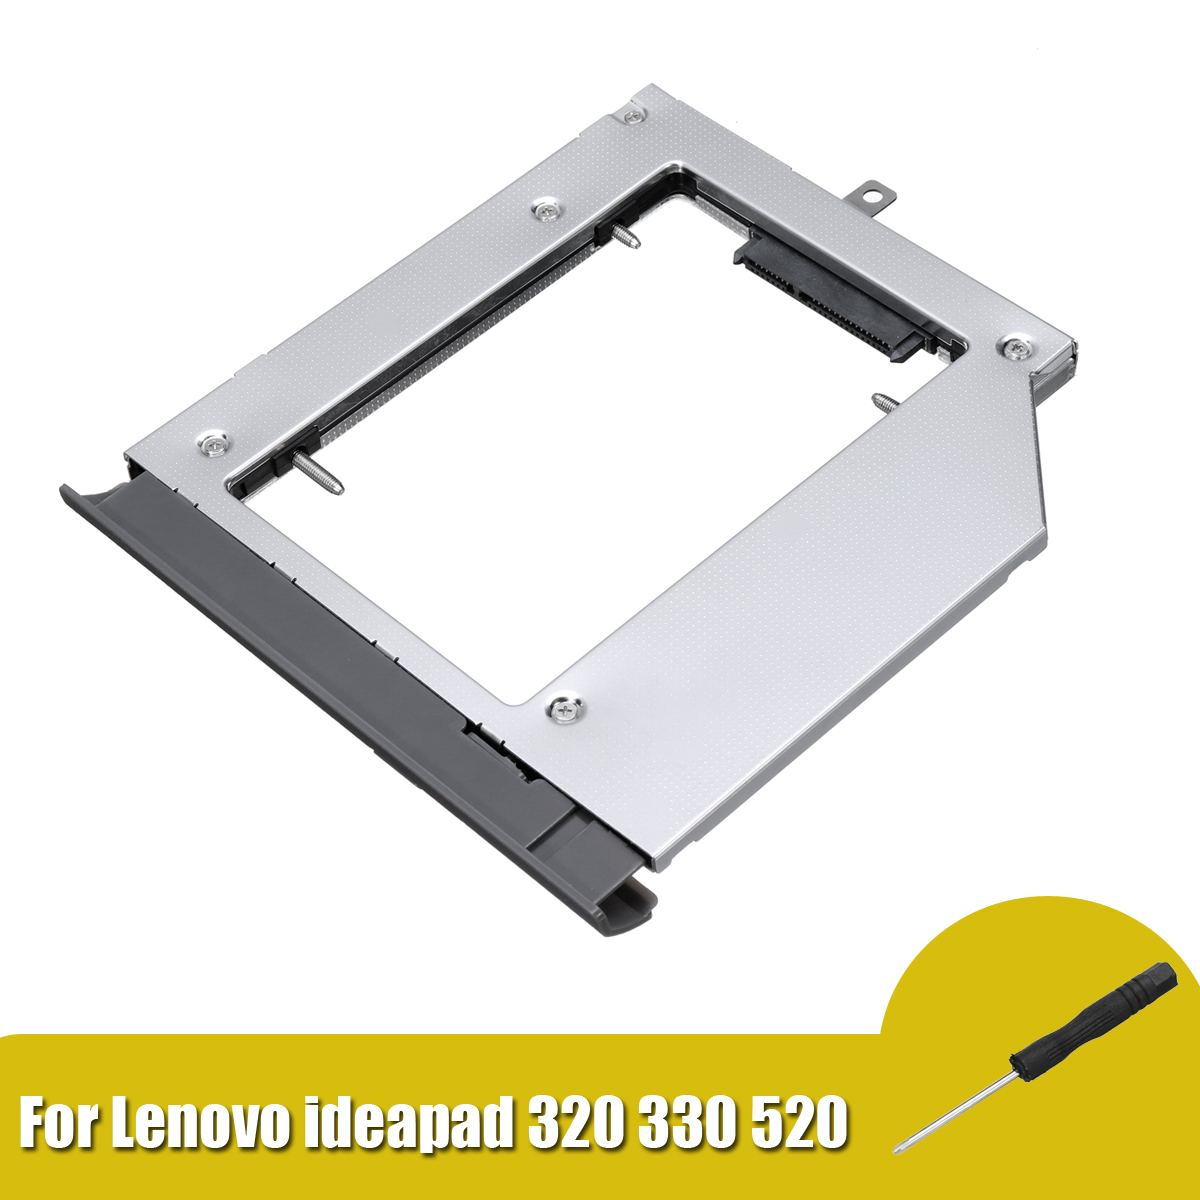 ShirLin Notebook Hard Disk Drive 2nd HDD SSD Hard Drive Caddy For Lenovo ideapad 320 330 520 with Screwdriver